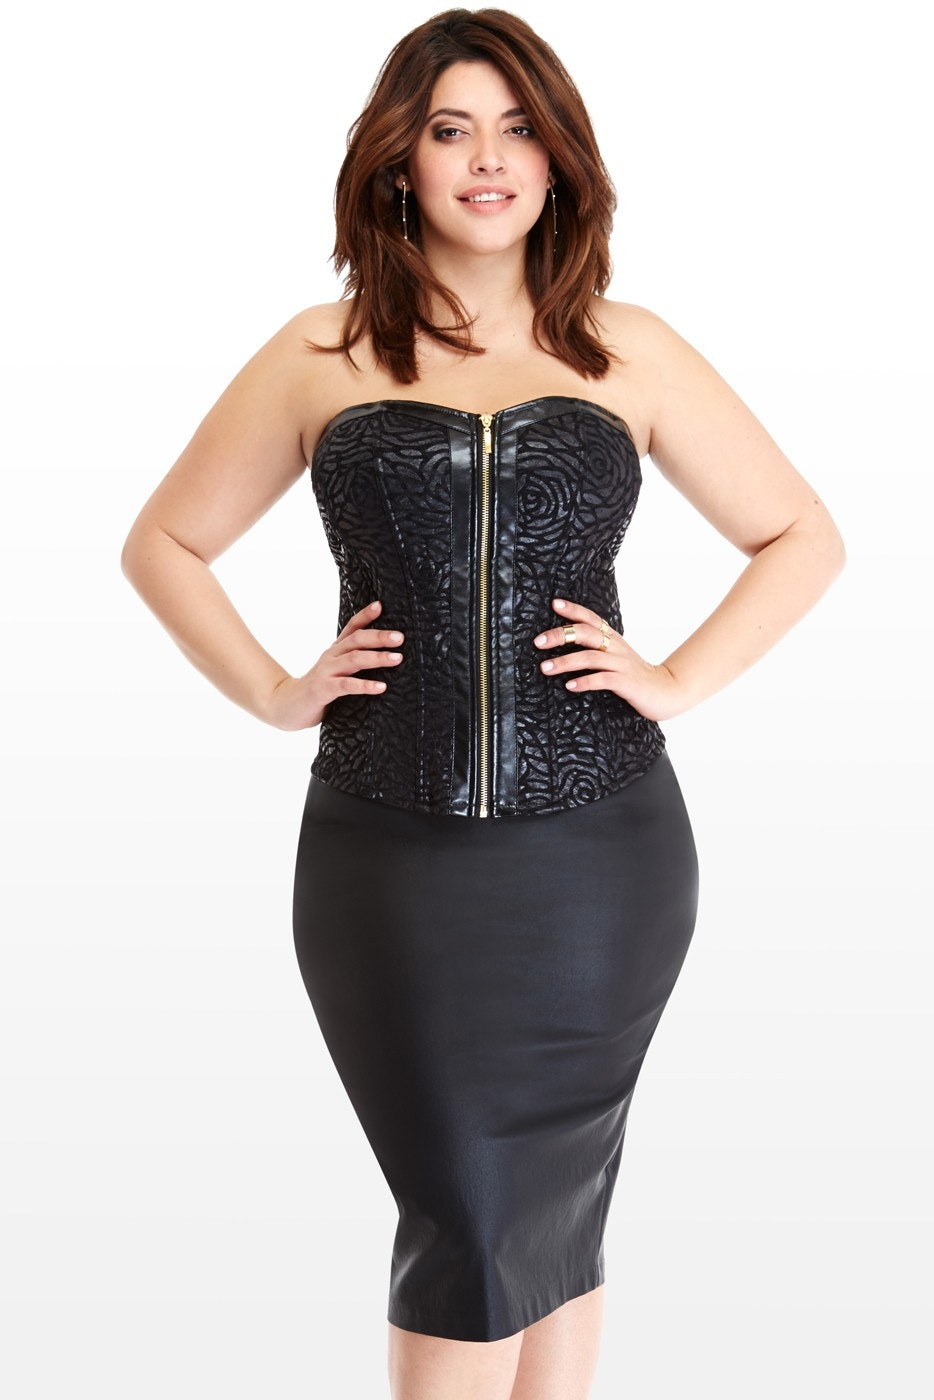 50 Shades Of Grey' Premiers This Week, So Here Are 25 Plus Size ...